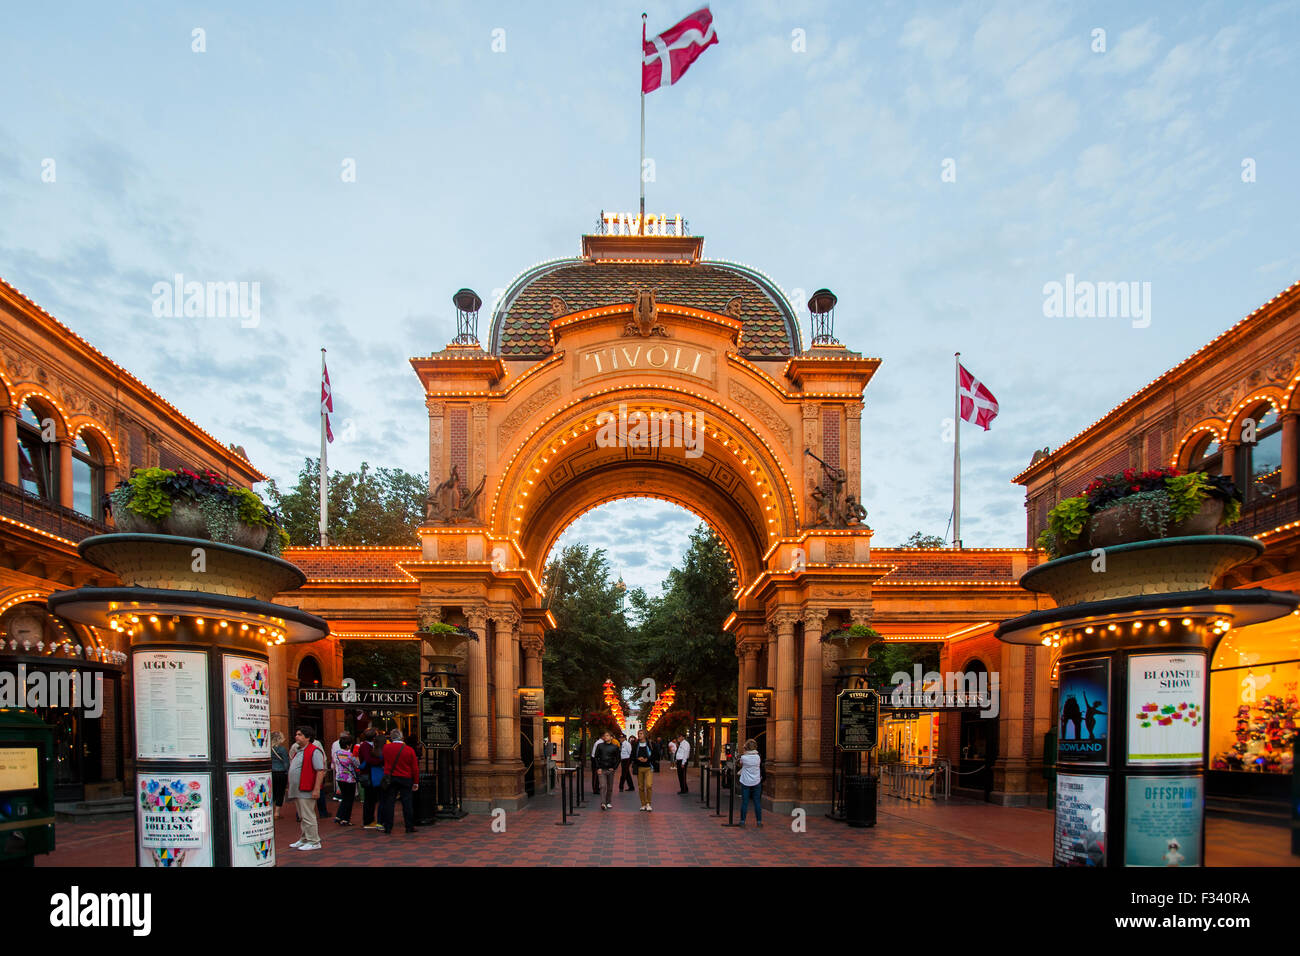 Tivoli Amusement Park Aarhus Main Entrance To Tivoli Amusement Park Copenhagen